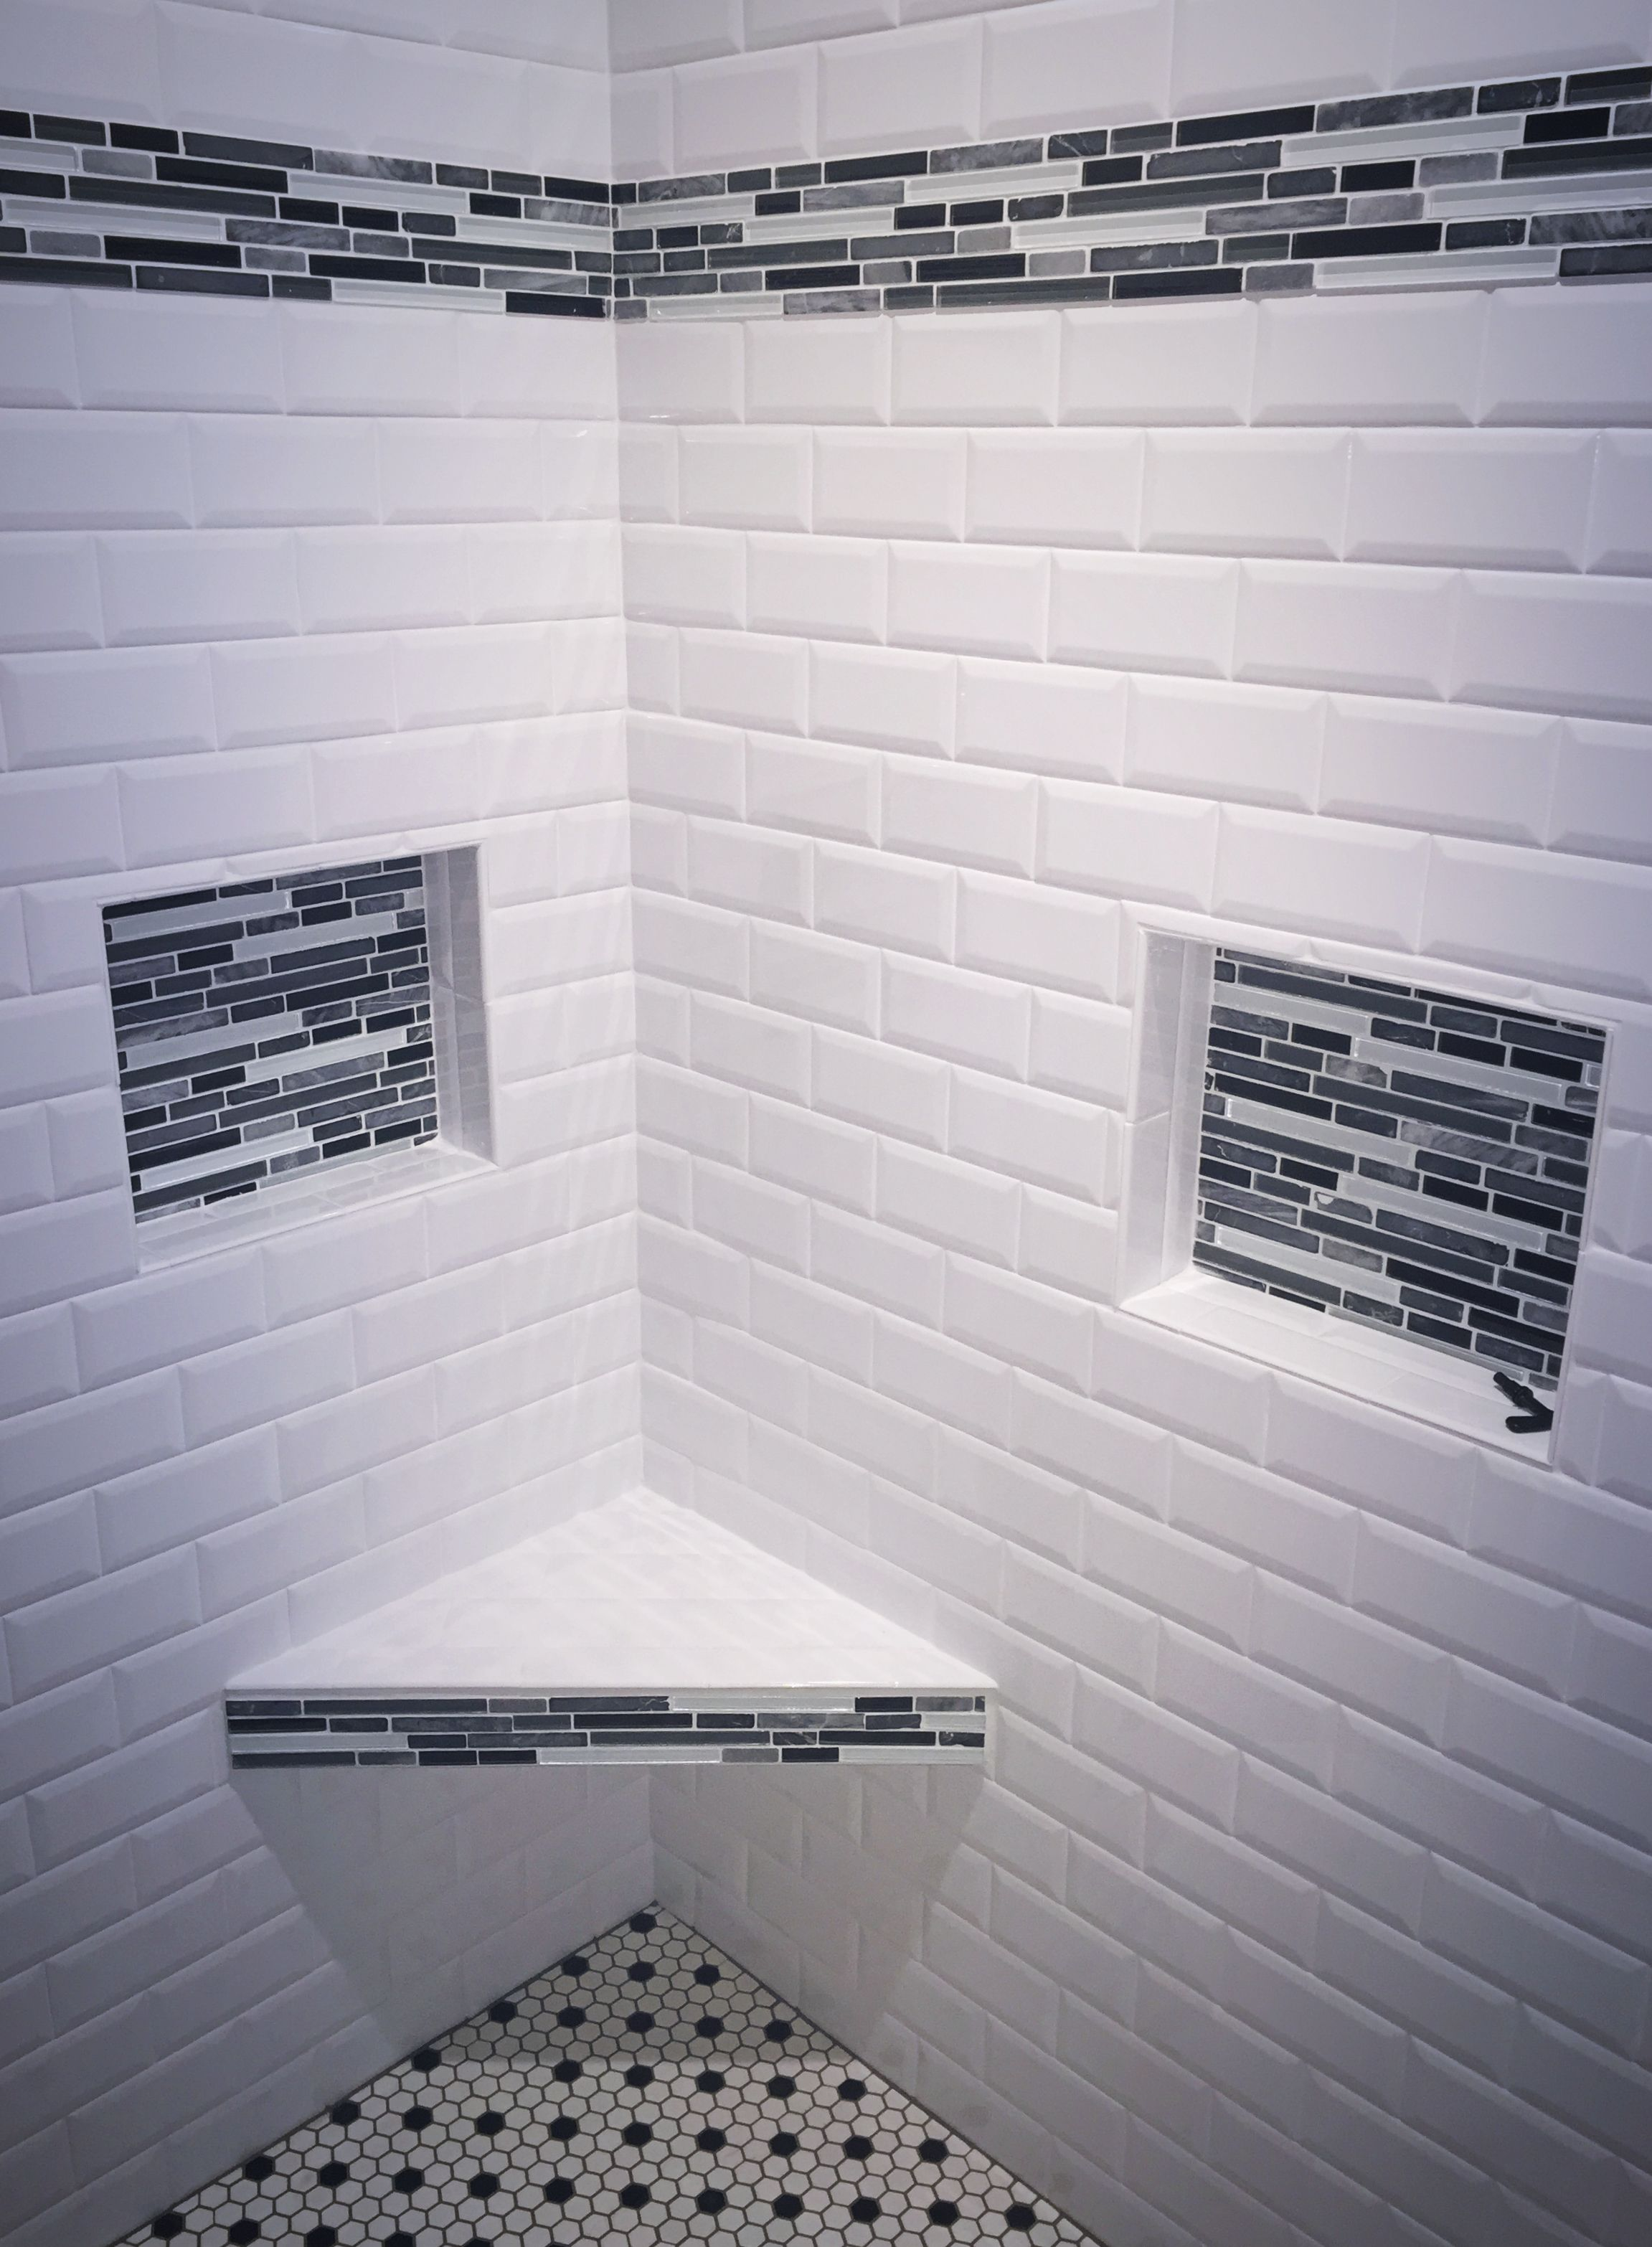 Remodeled shower. Walls done in on-trend white subway tile ...